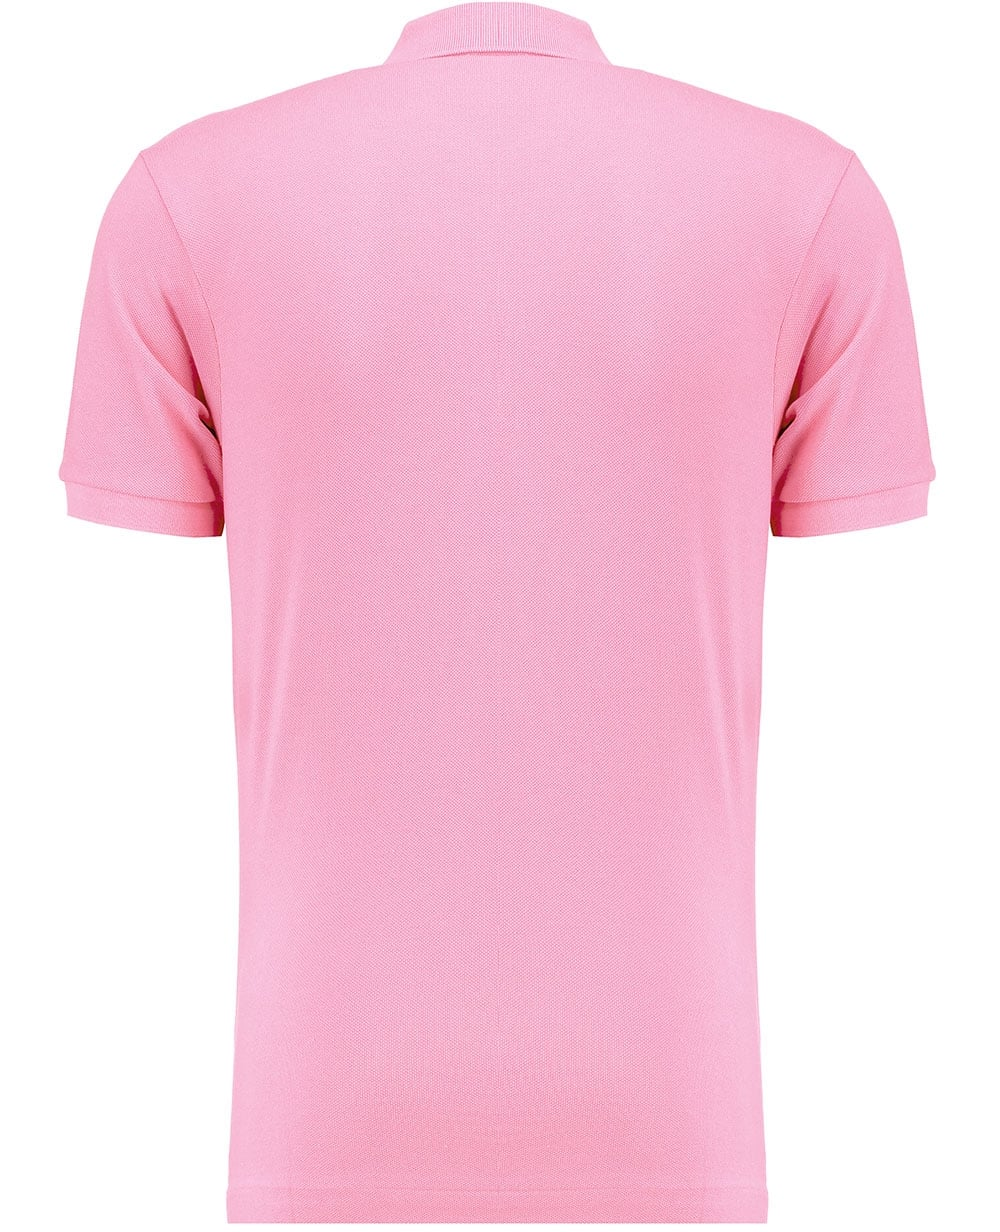 Lacoste mens peach pink classic polo shirt shortsleeves for Mens pink shirts uk